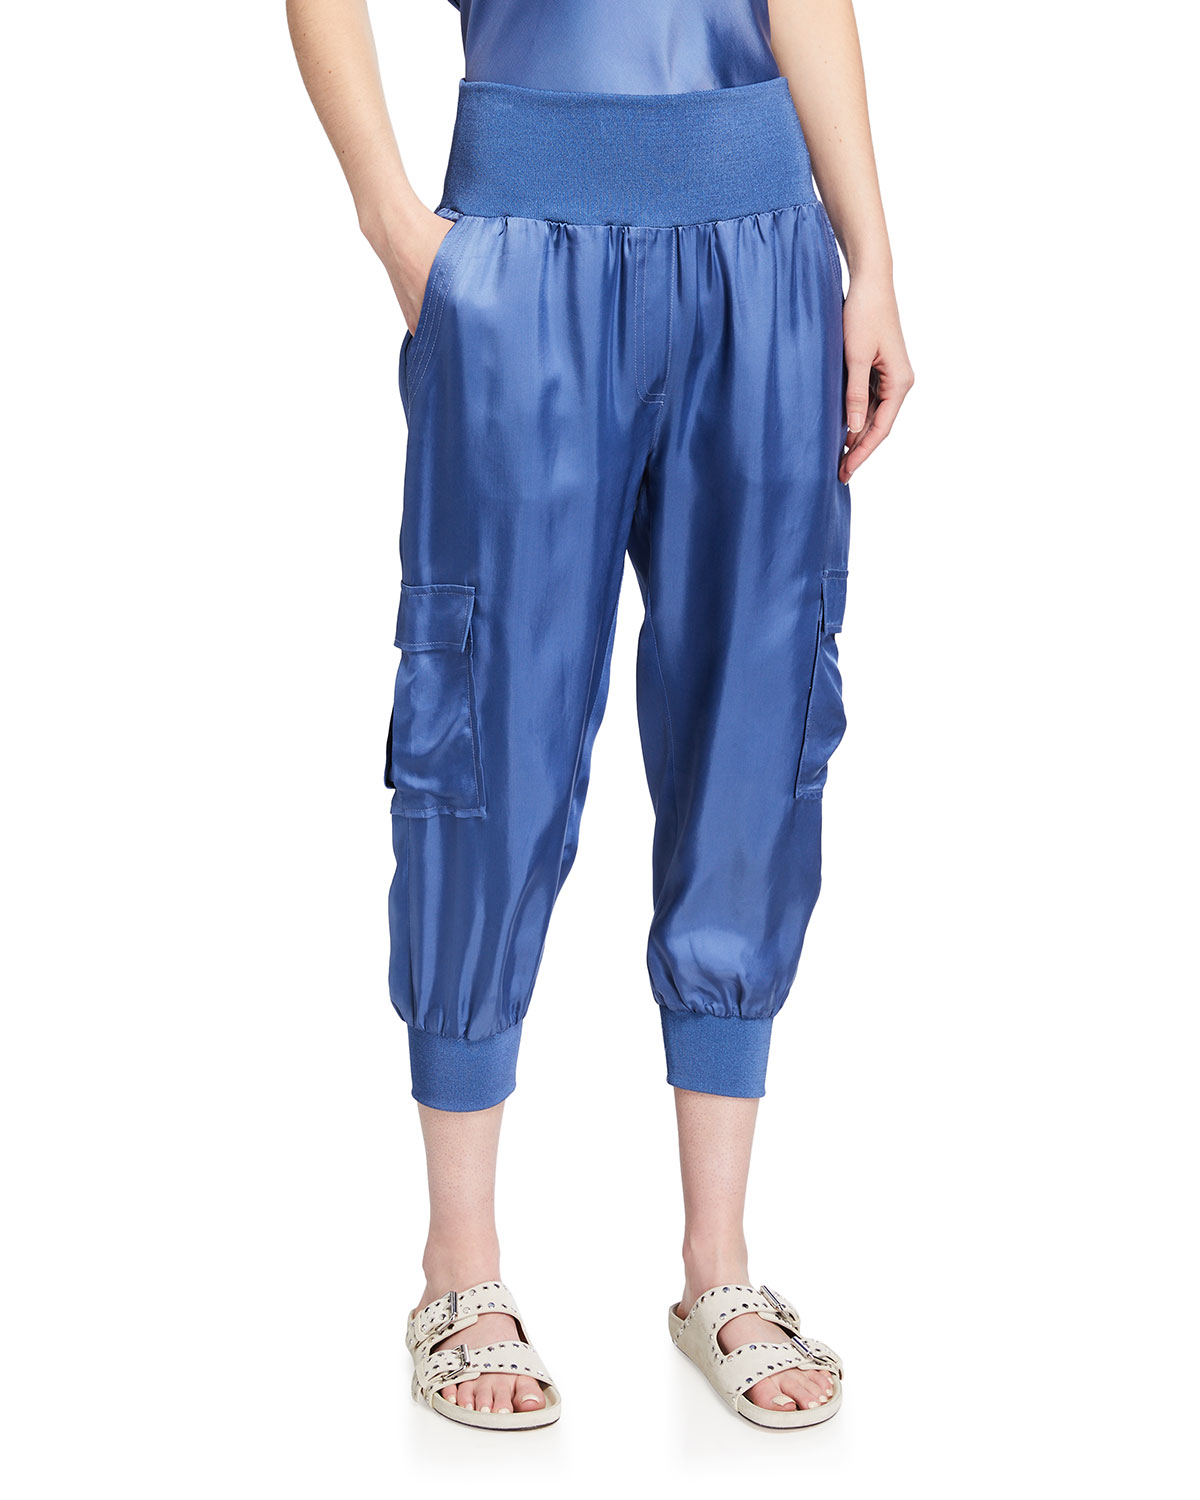 Giles Cropped Pants